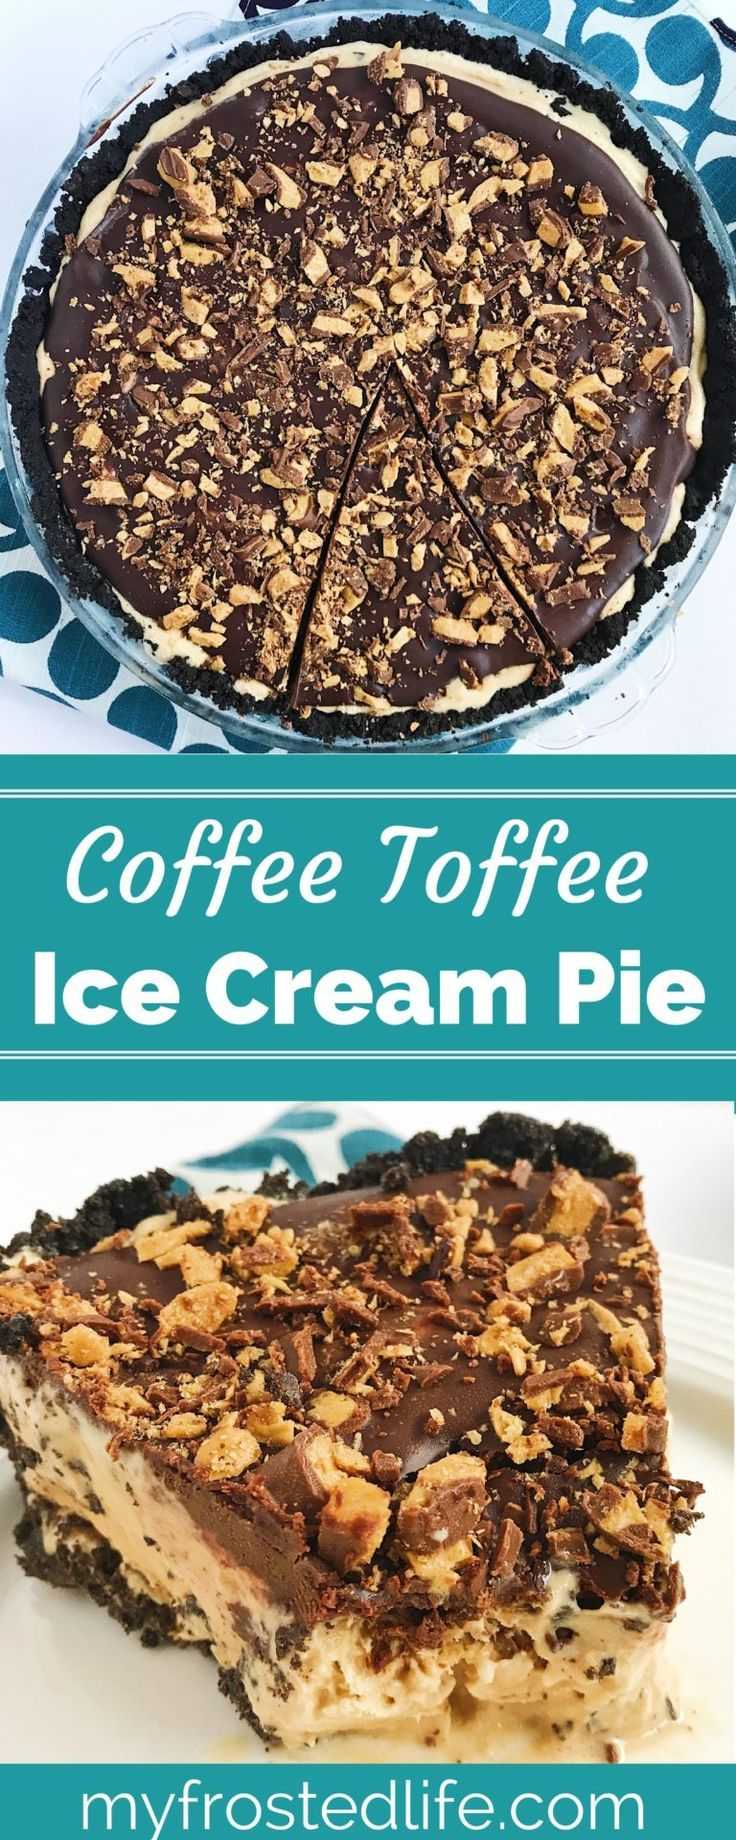 What could be better than an ice cream sundae and a pie? An easy coffee toffee ice cream pie of course! This homemade, no bake ice cream pie layers an oreo cookie crust, the best coffee heath bar ice cream, and a chocolate ganache topping. This simple, creamy ice cream dessert will remind you of summer birthdays at the local ice cream parlor. Put  it on your menu and in the freezer today! Click through to the recipe to find out how easy this DIY ice cream pie is to make!